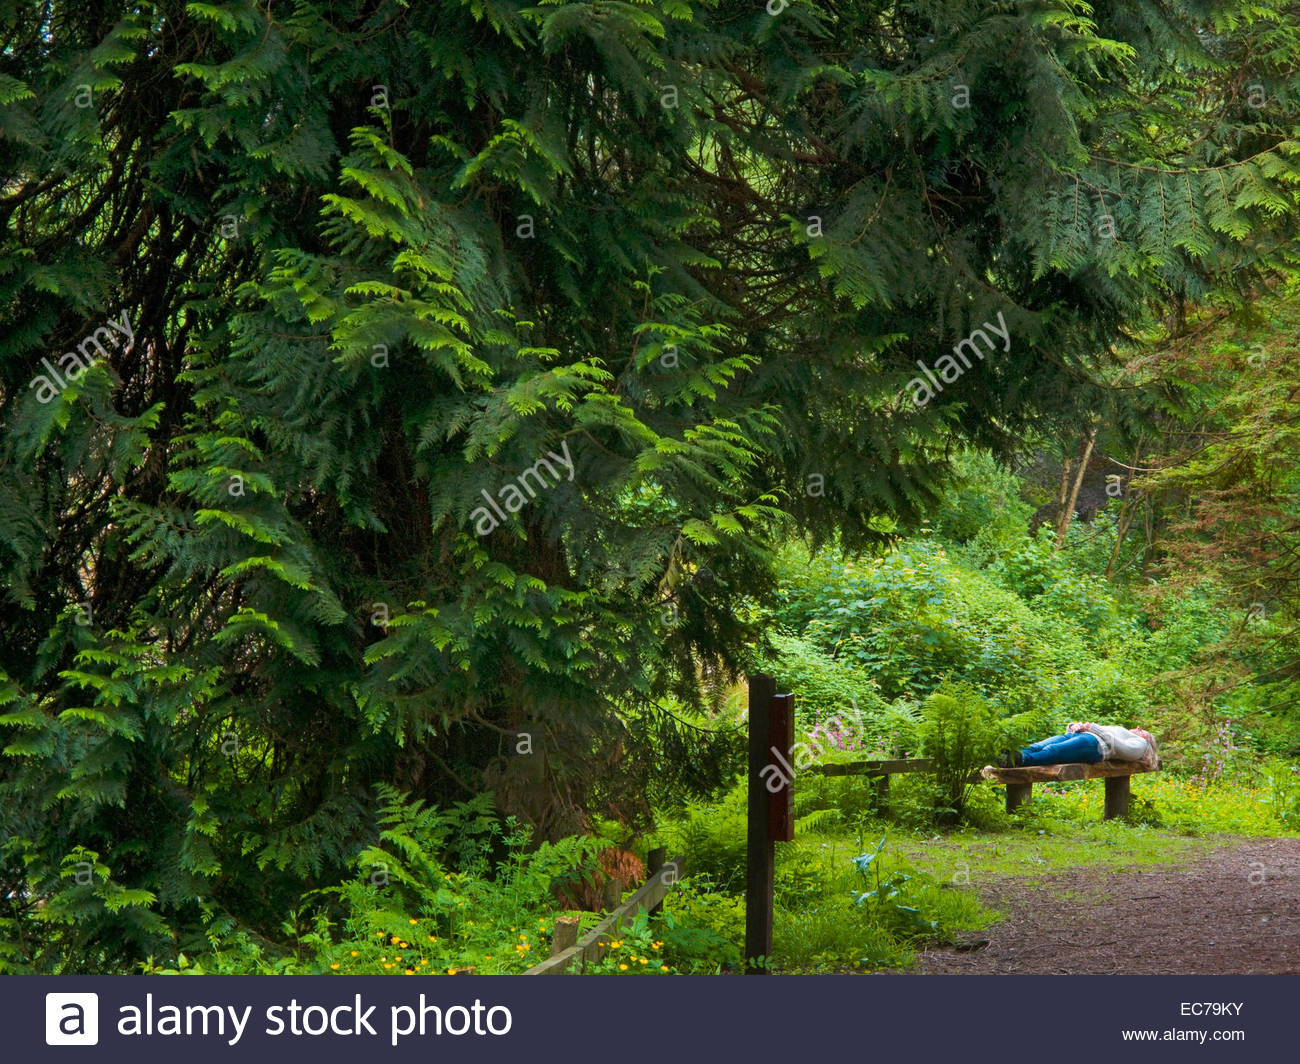 Woman lying on a bench in a forest - Stock Image